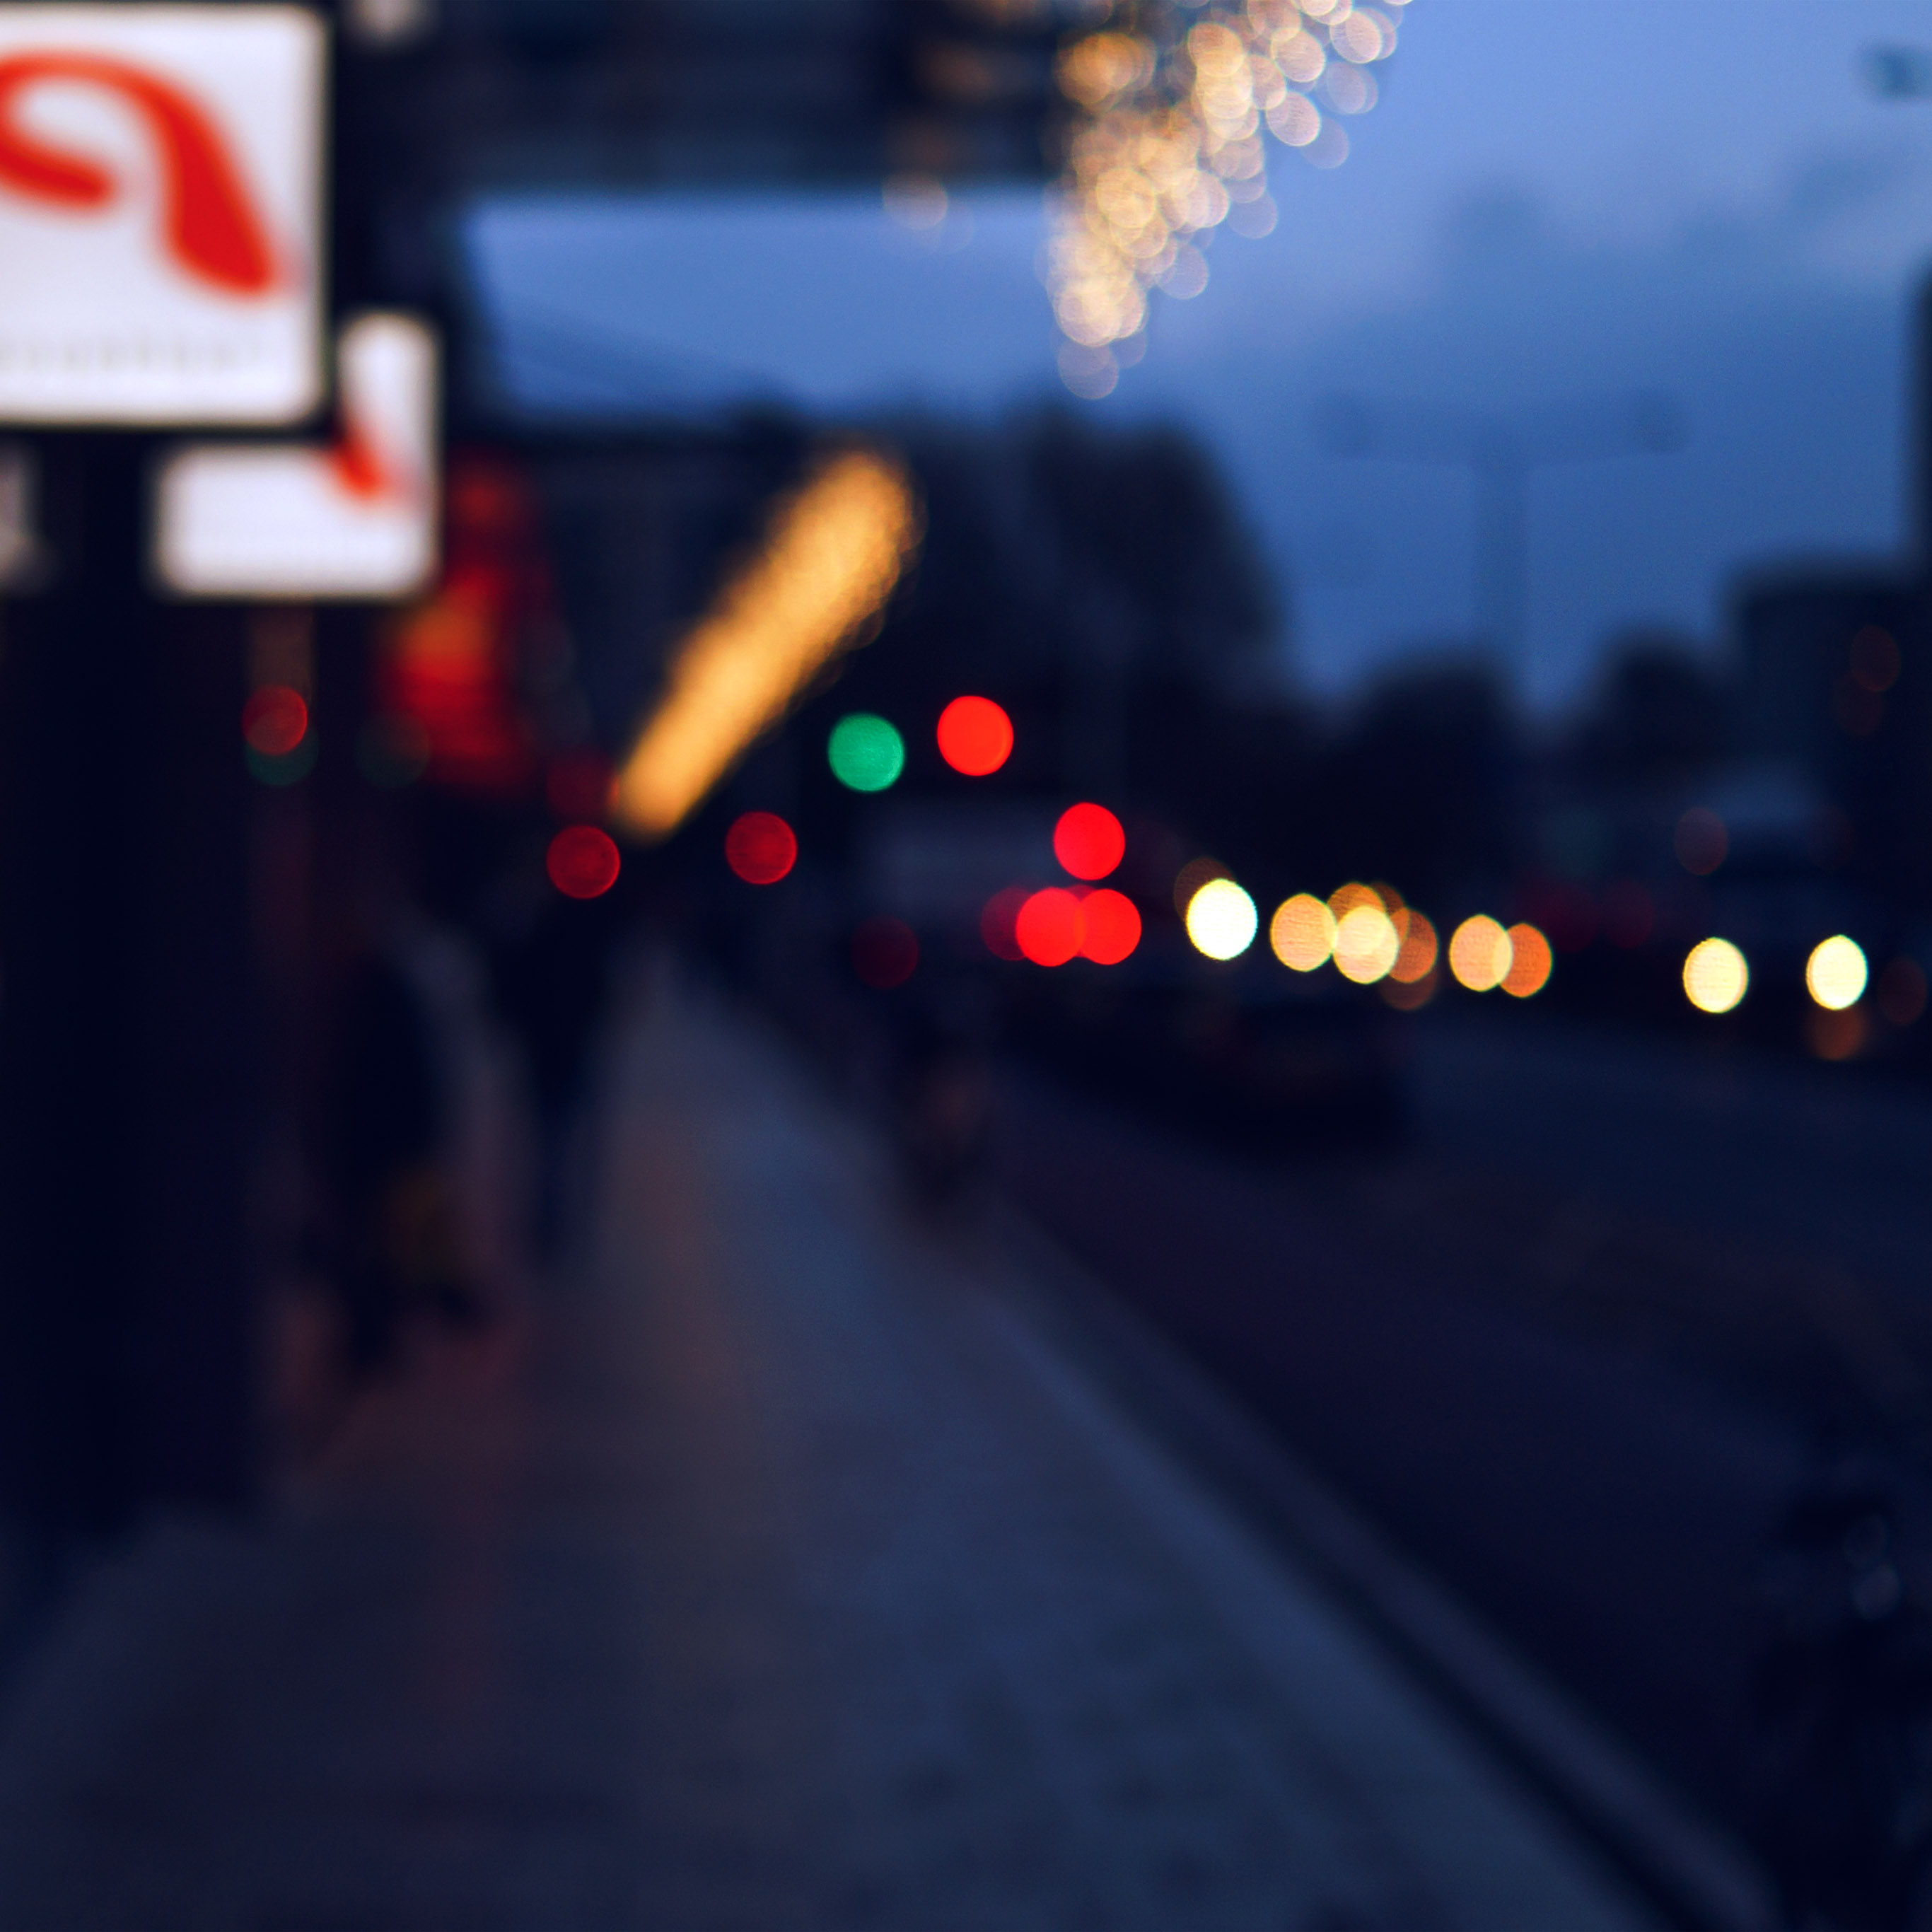 bokeh city lights photo - photo #33